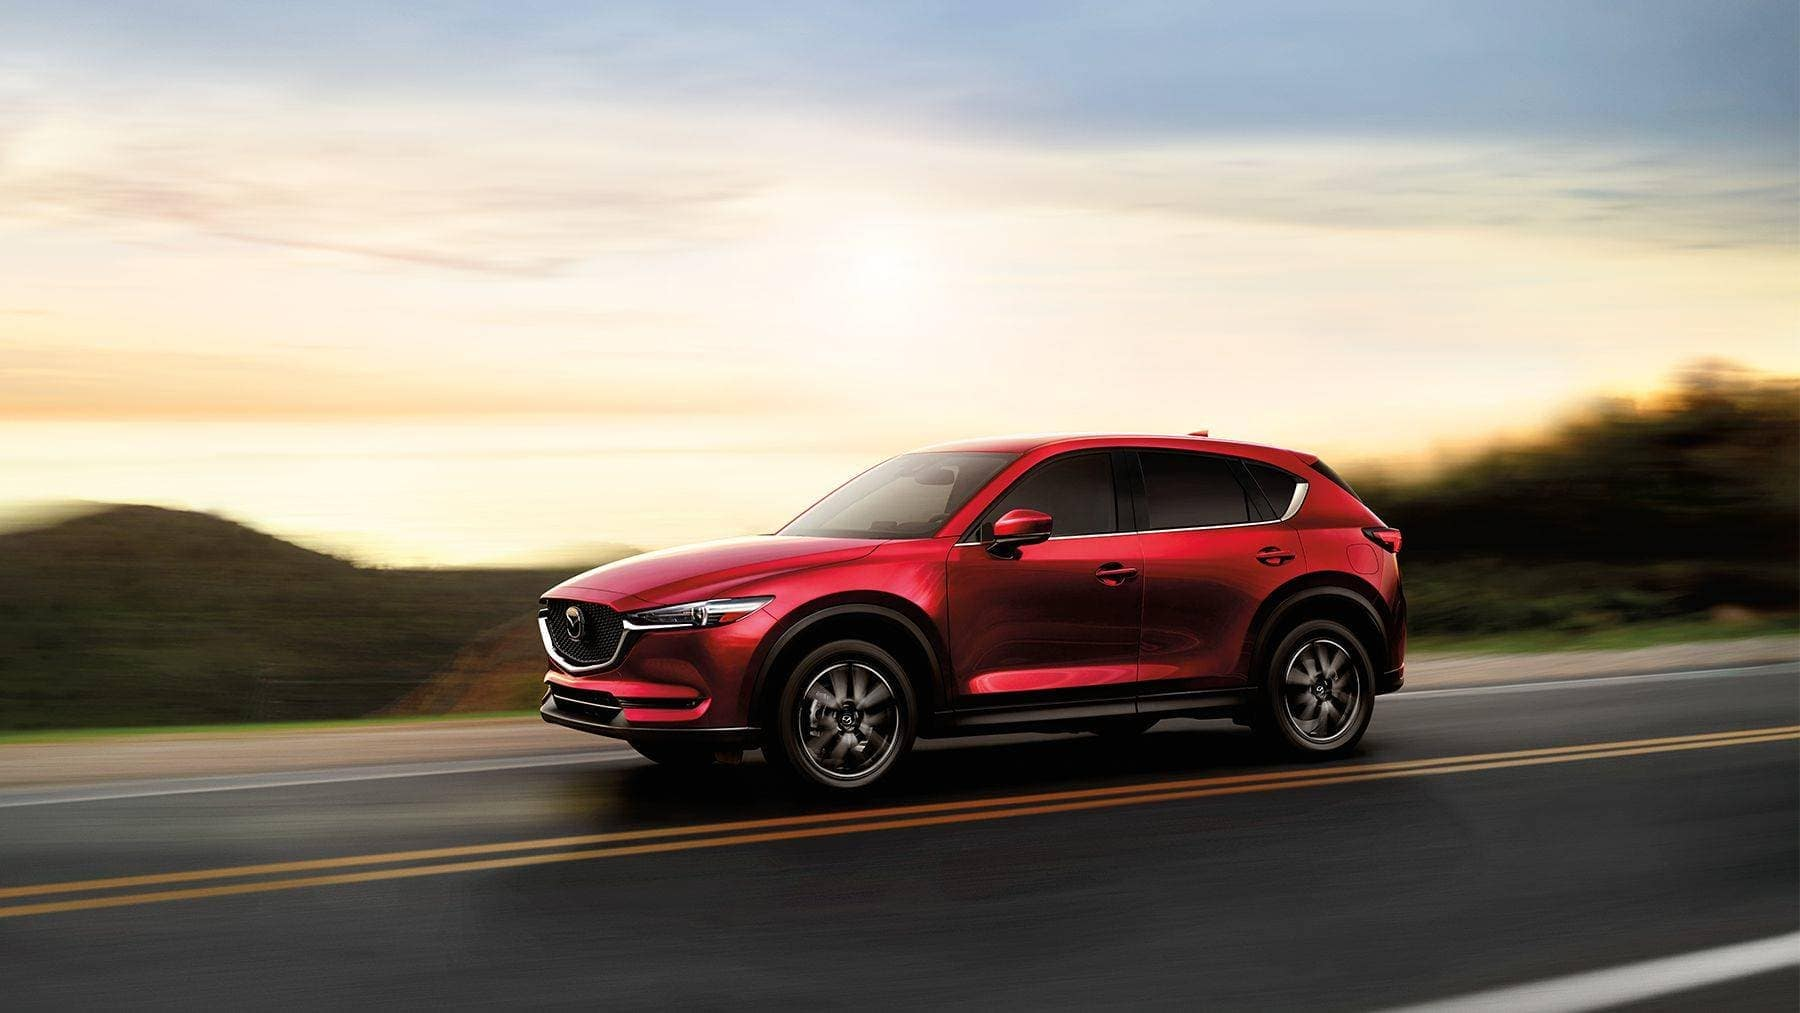 2018 Mazda CX-5 driving on the road